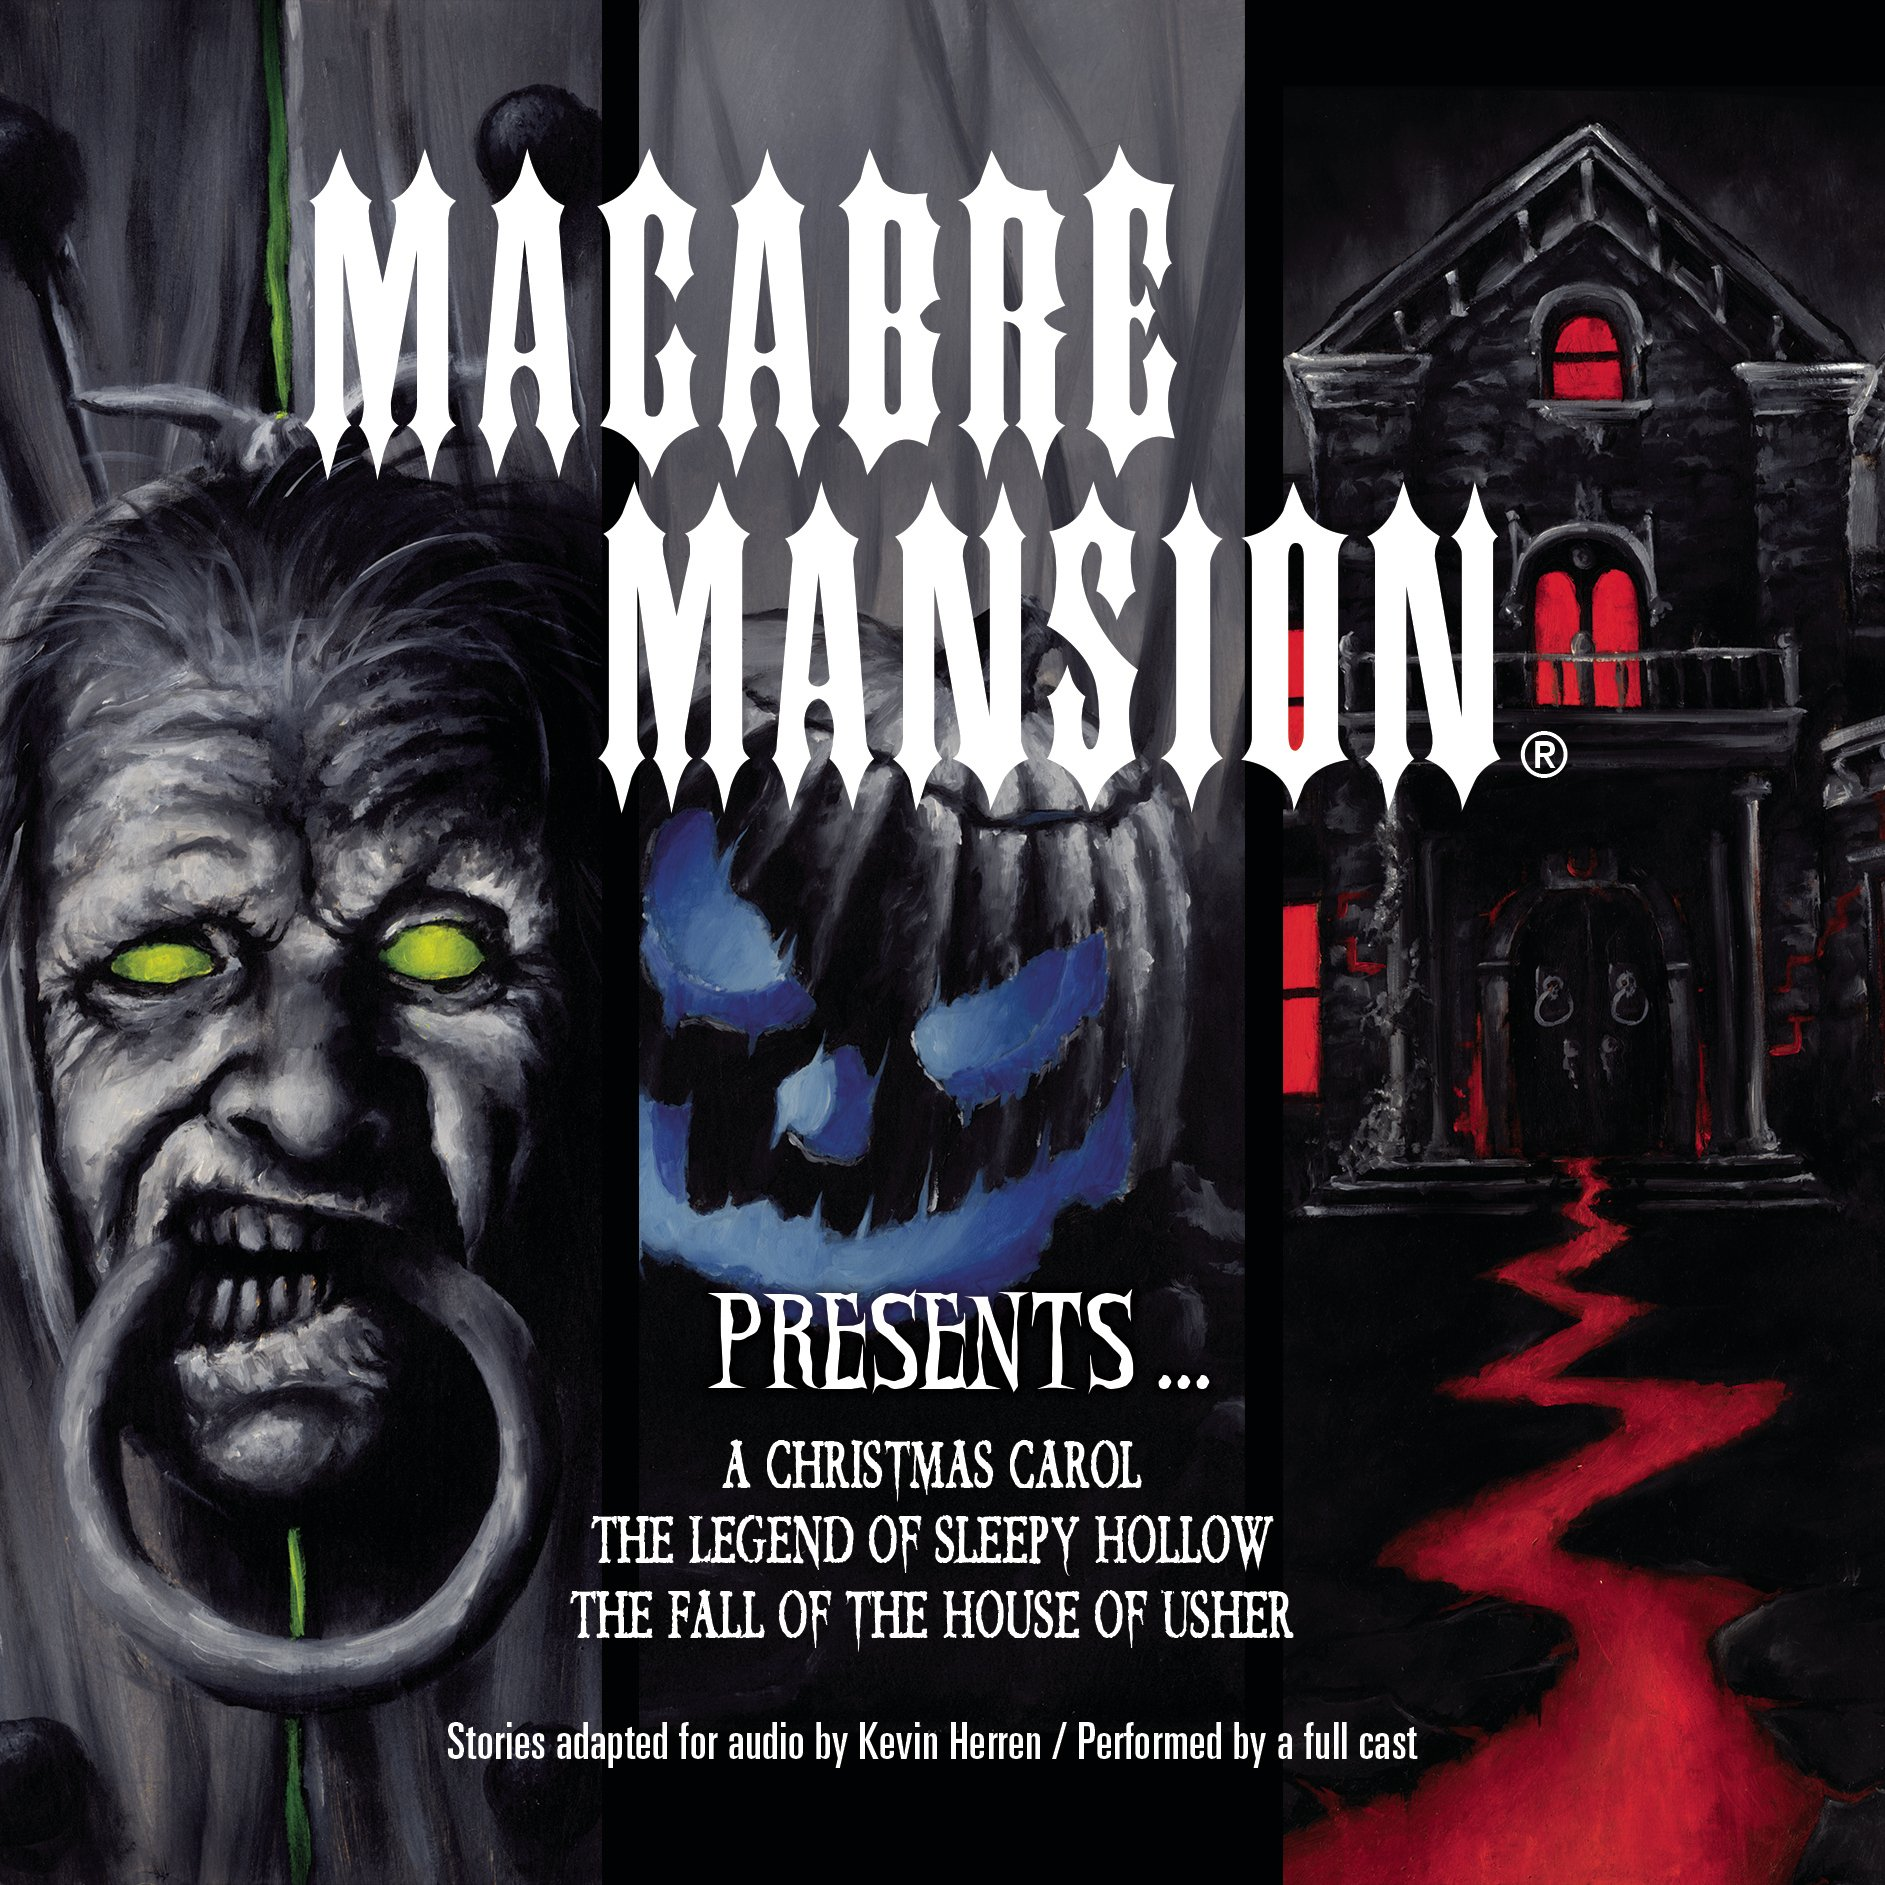 Download Macabre Mansion Presents ... 'A Christmas Carol', 'The Legend of Sleepy Hollow', and 'The Fall of the House of Usher' (Full Cast Audio Theater) ebook